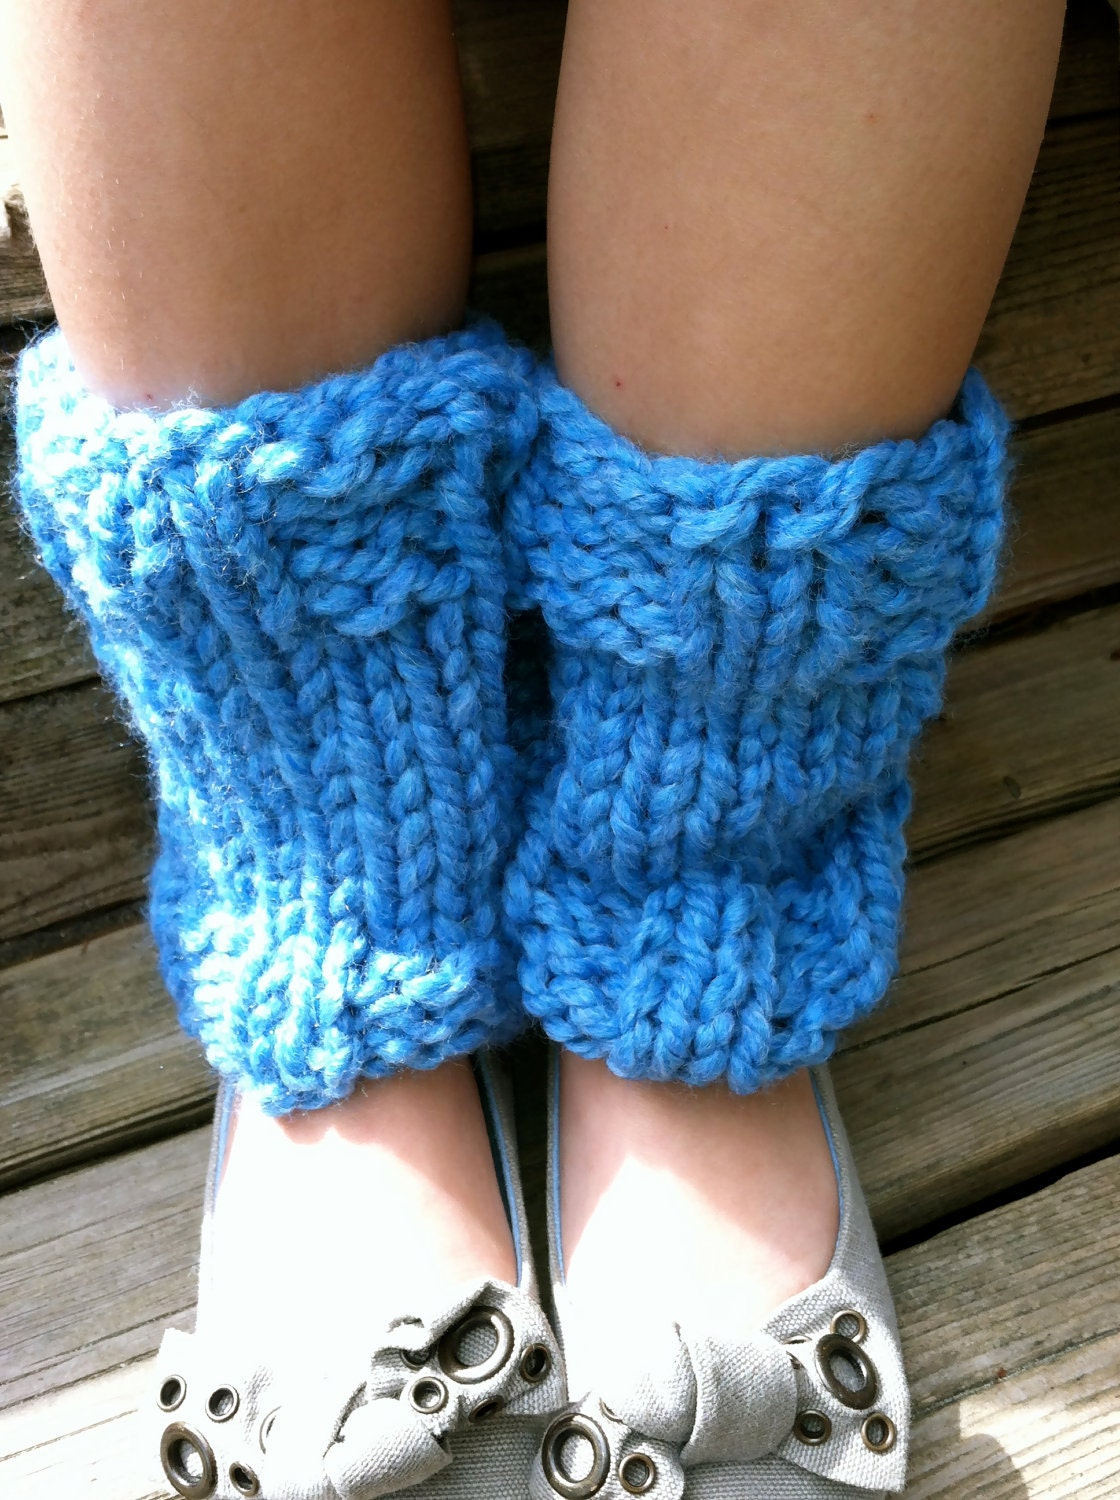 Knitting Pattern For Chunky Leg Warmers : KNIT LEG WARMERS Indigo Blue Chunky Knit Hand Knitted Leg